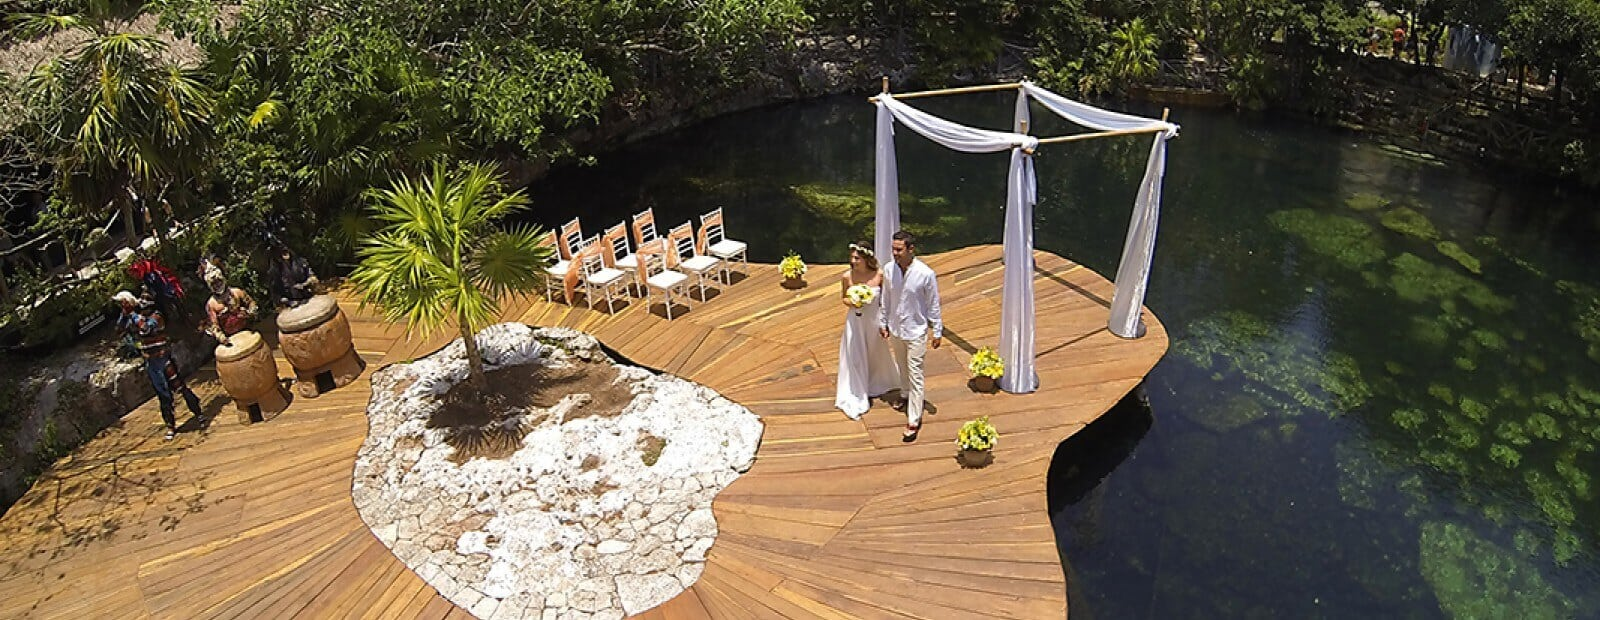 Sandos Caracol Cenote Location for the wedding Ceremony.